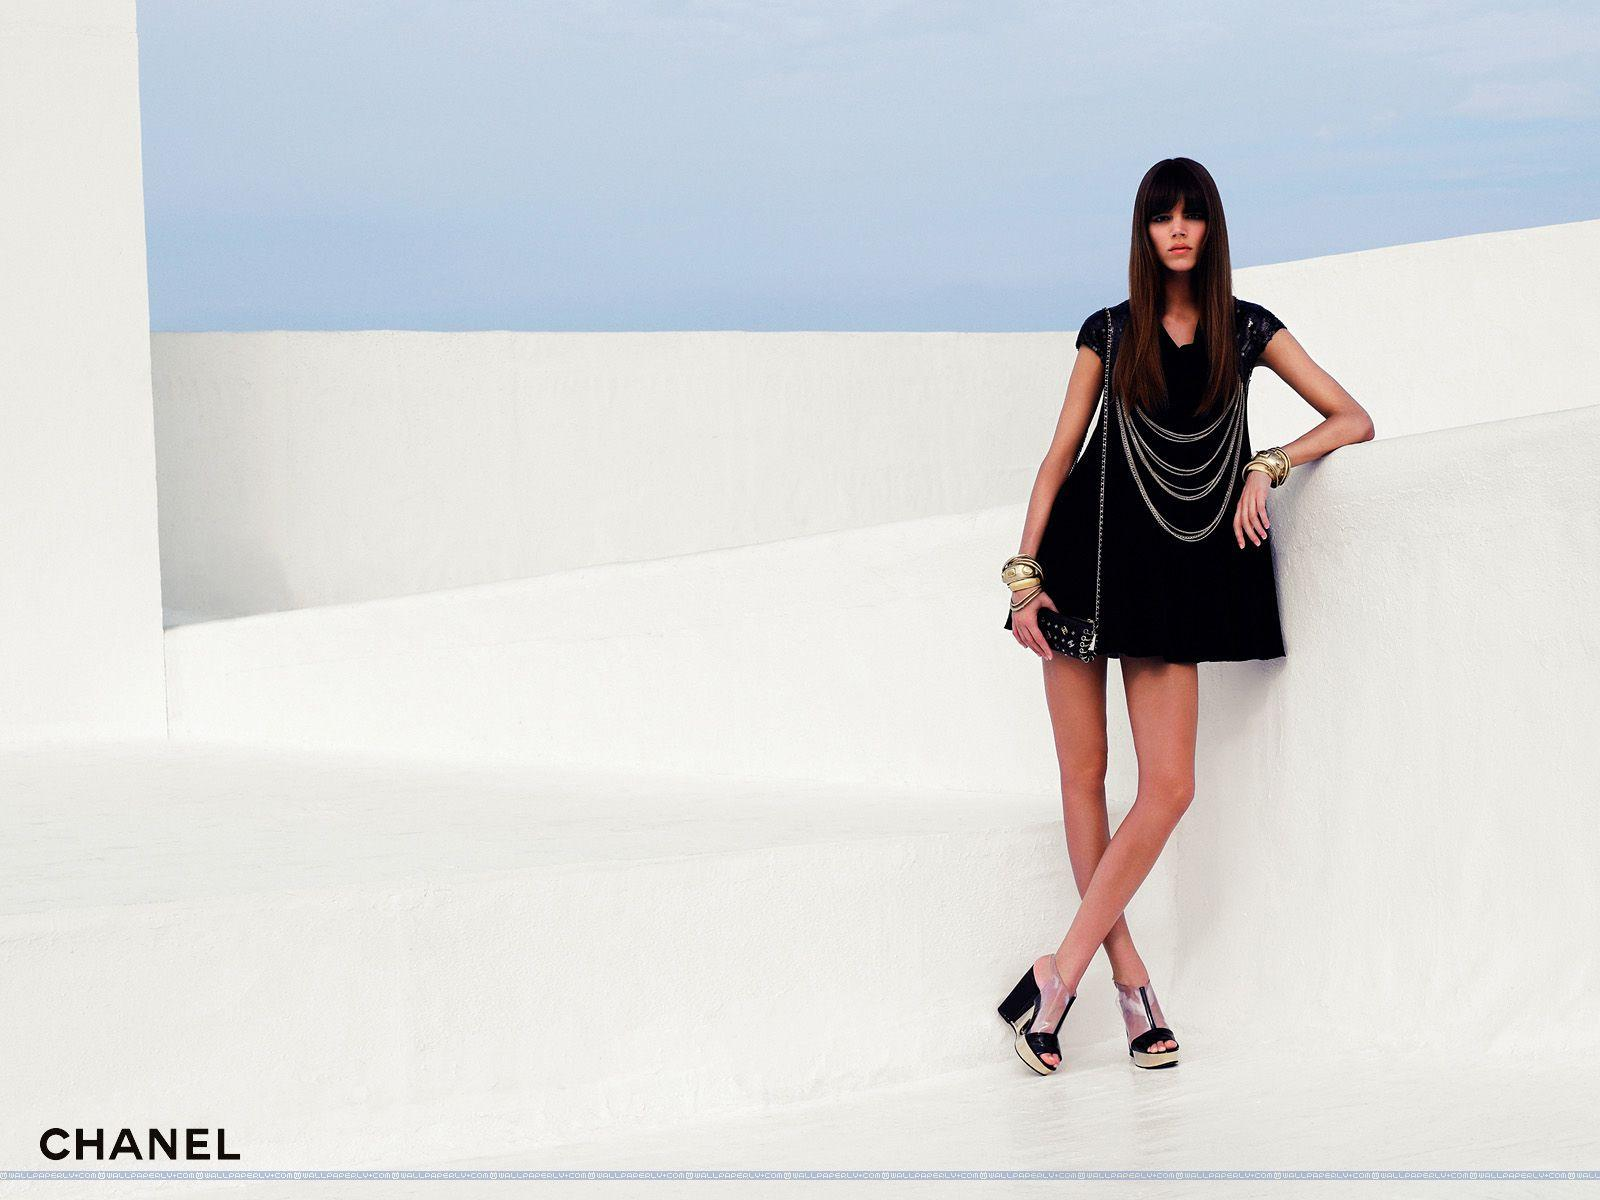 Fashion Wallpapers  Wallpaper Cave